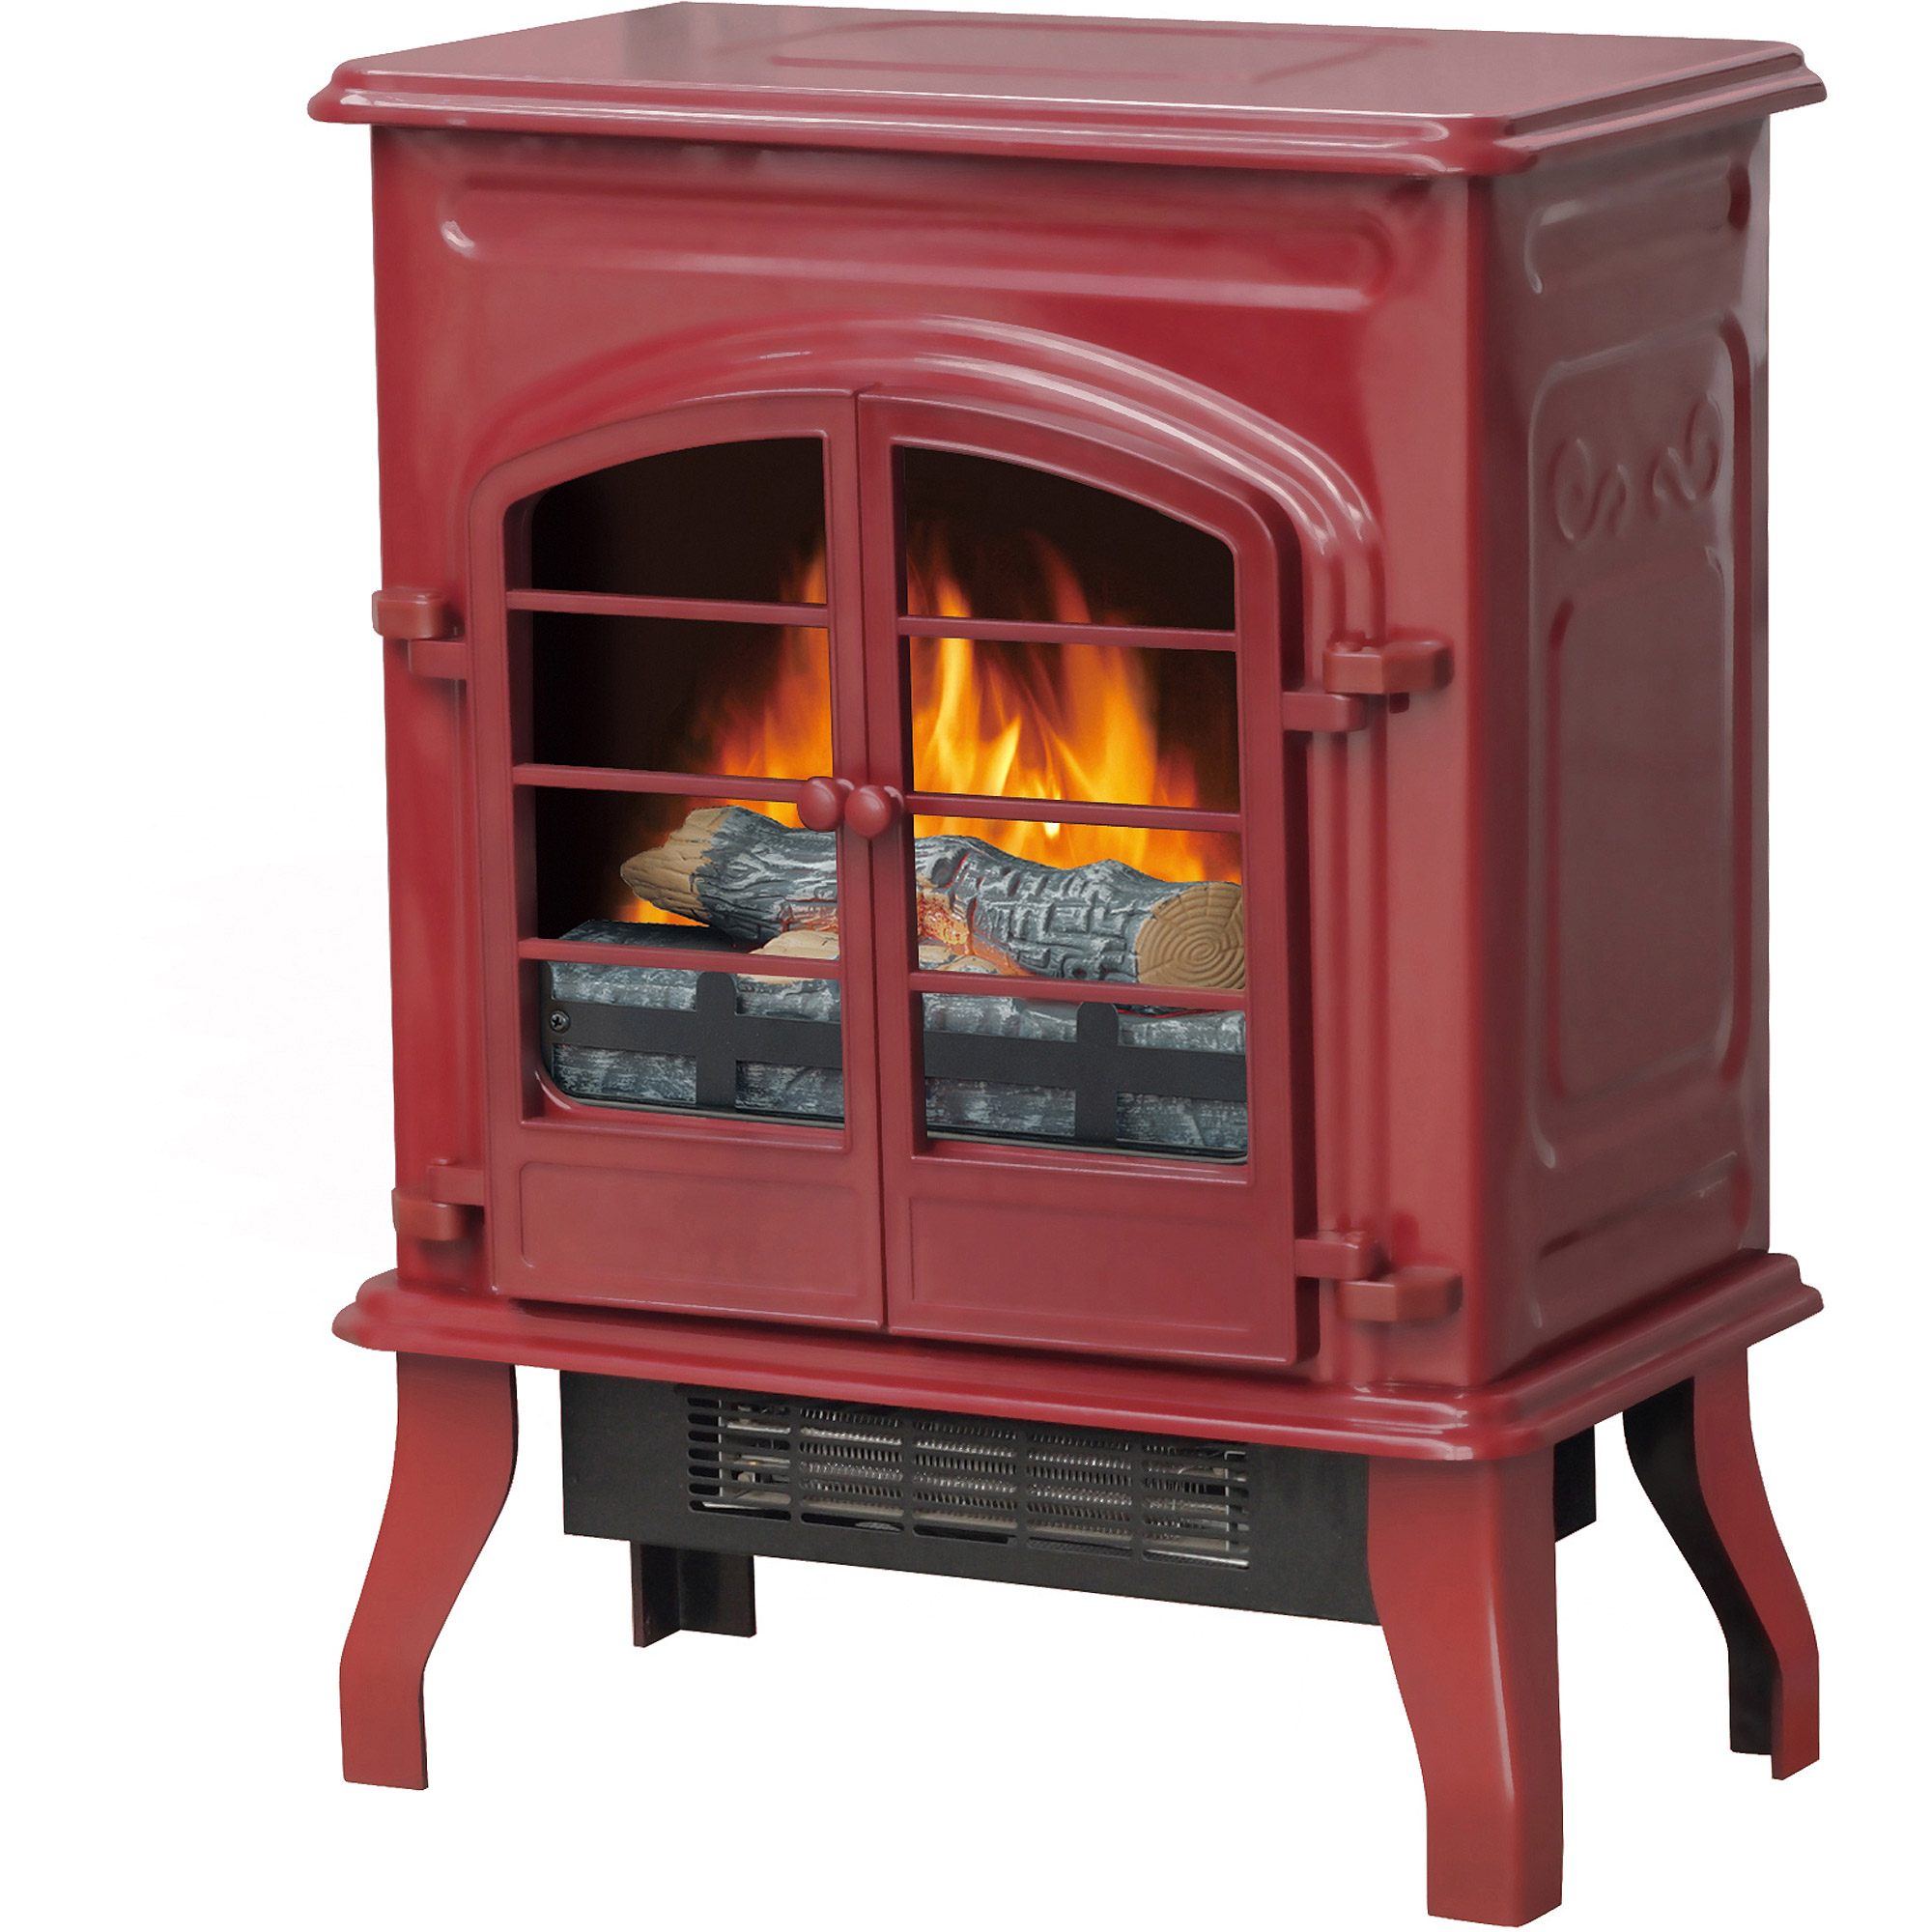 Decor-Flame Electric Stove Heater, Glossy Red